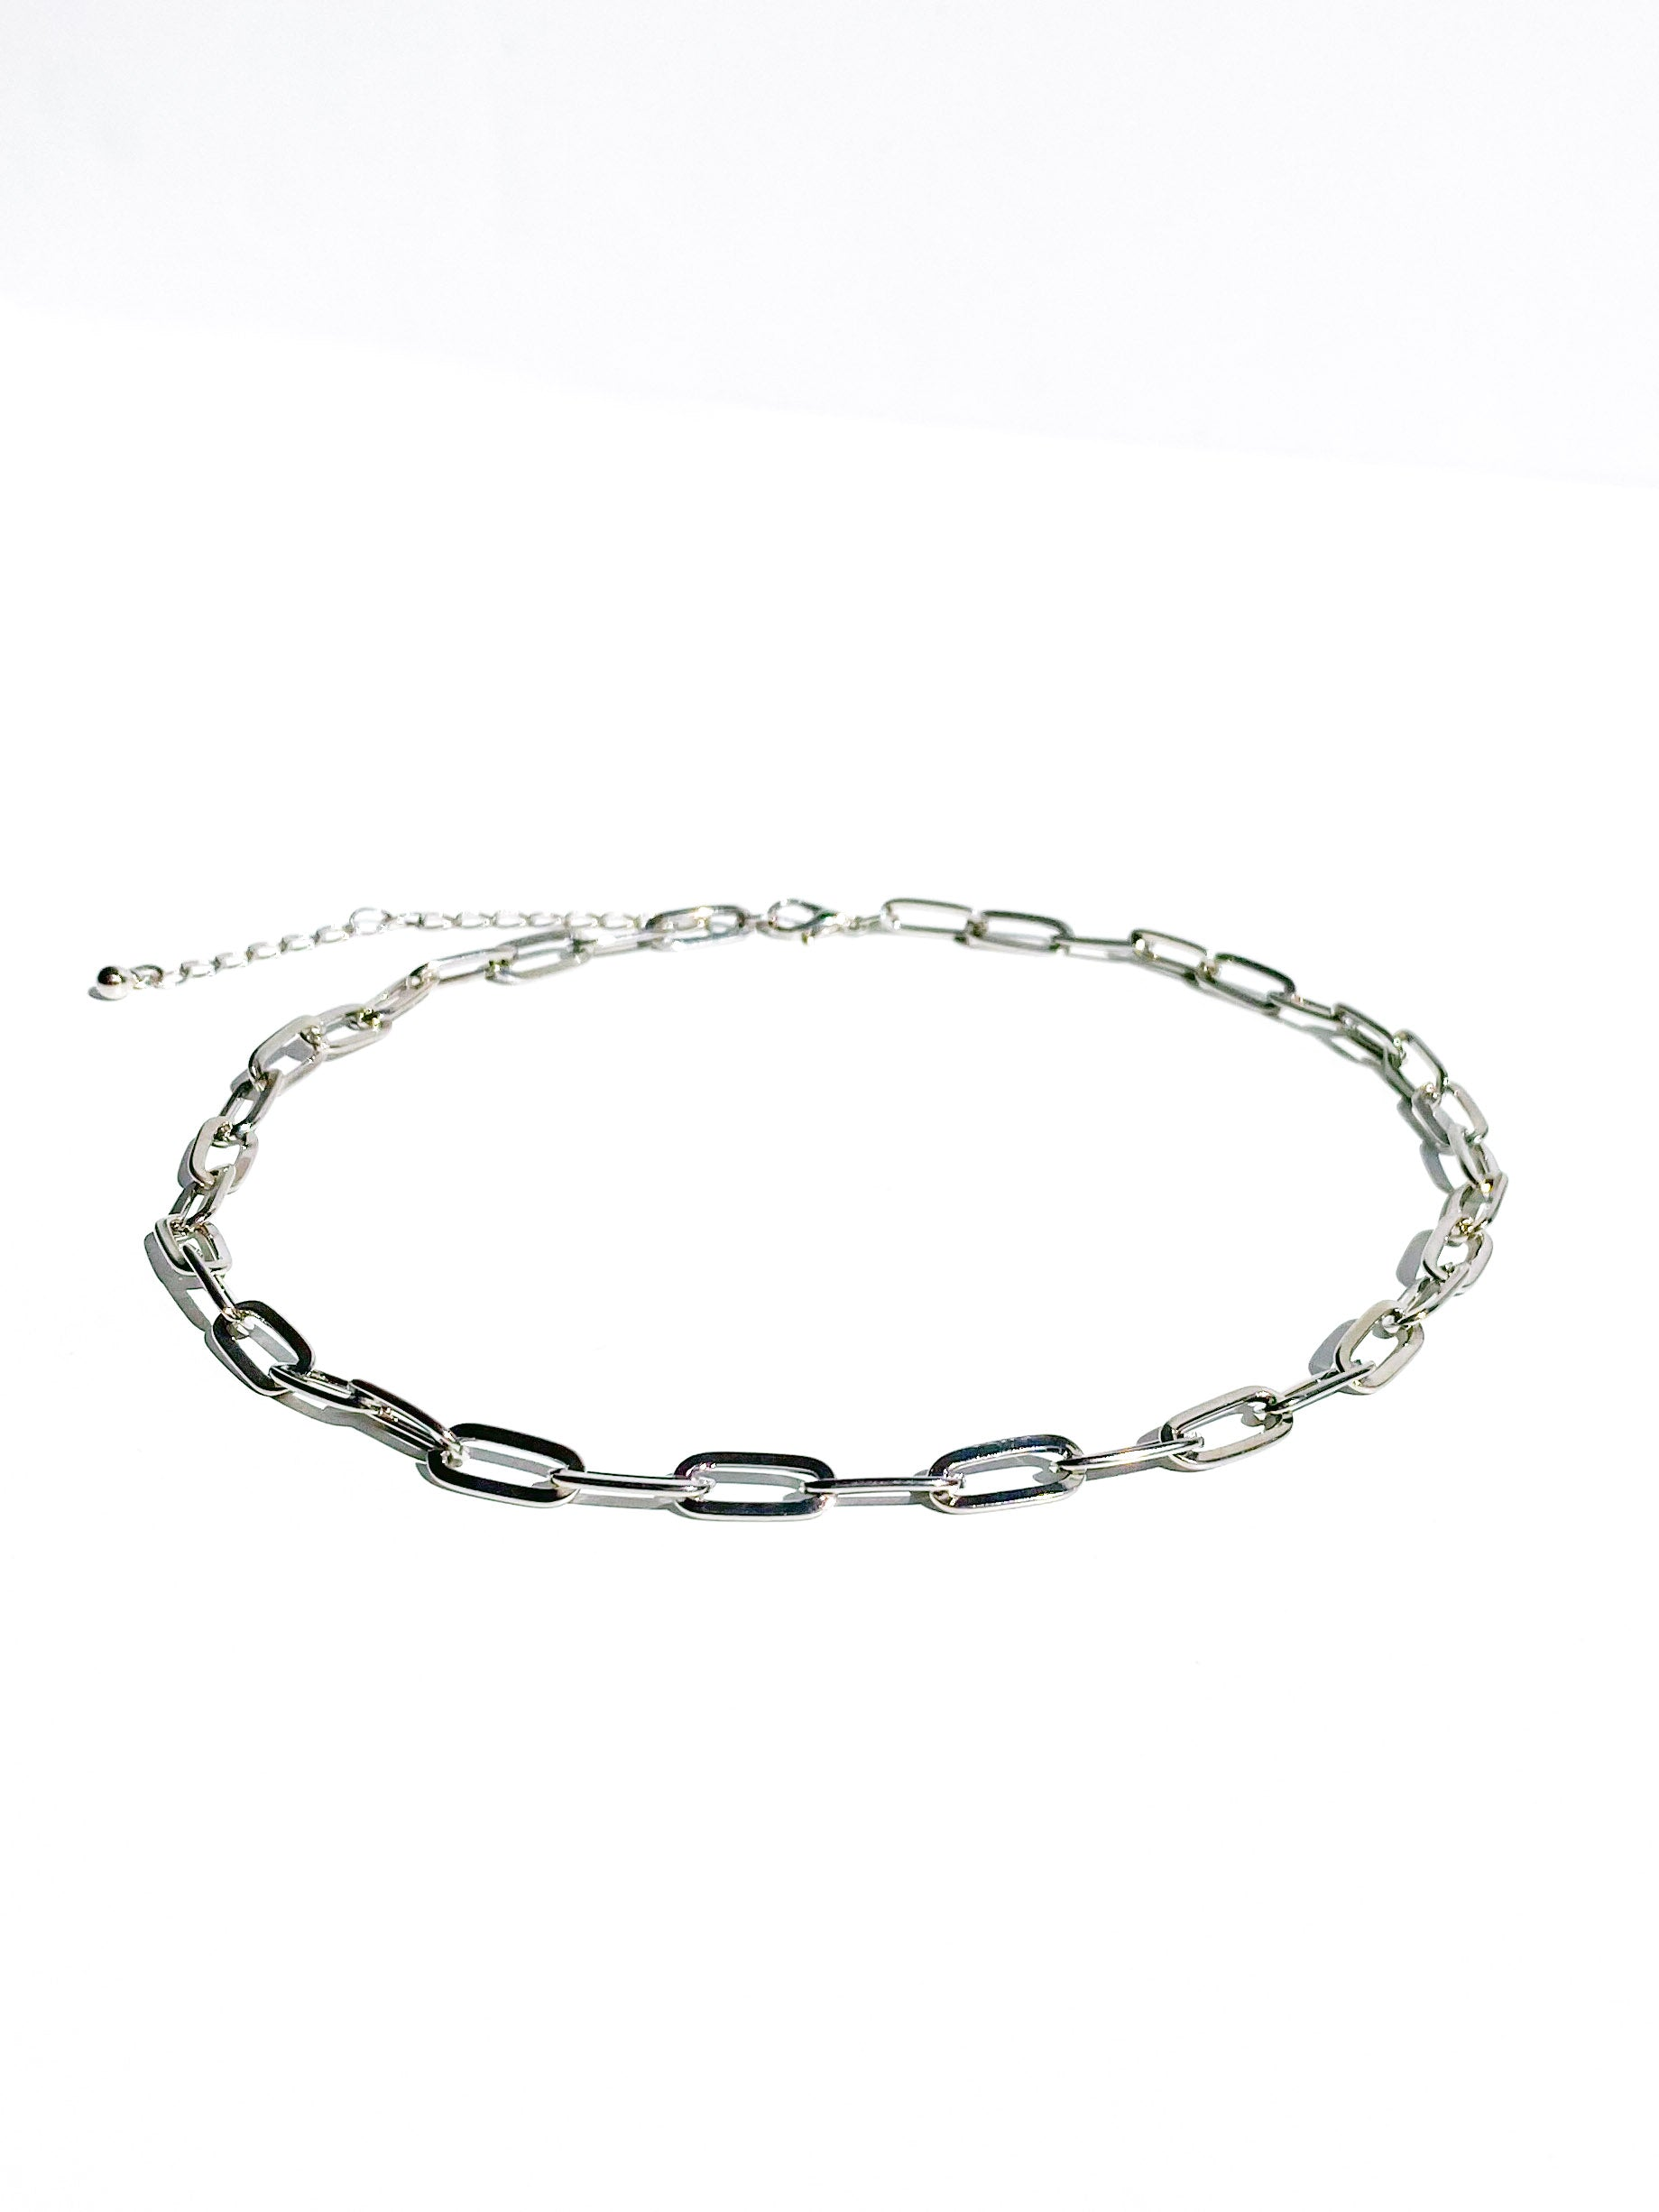 Silver Petite Chain Necklace